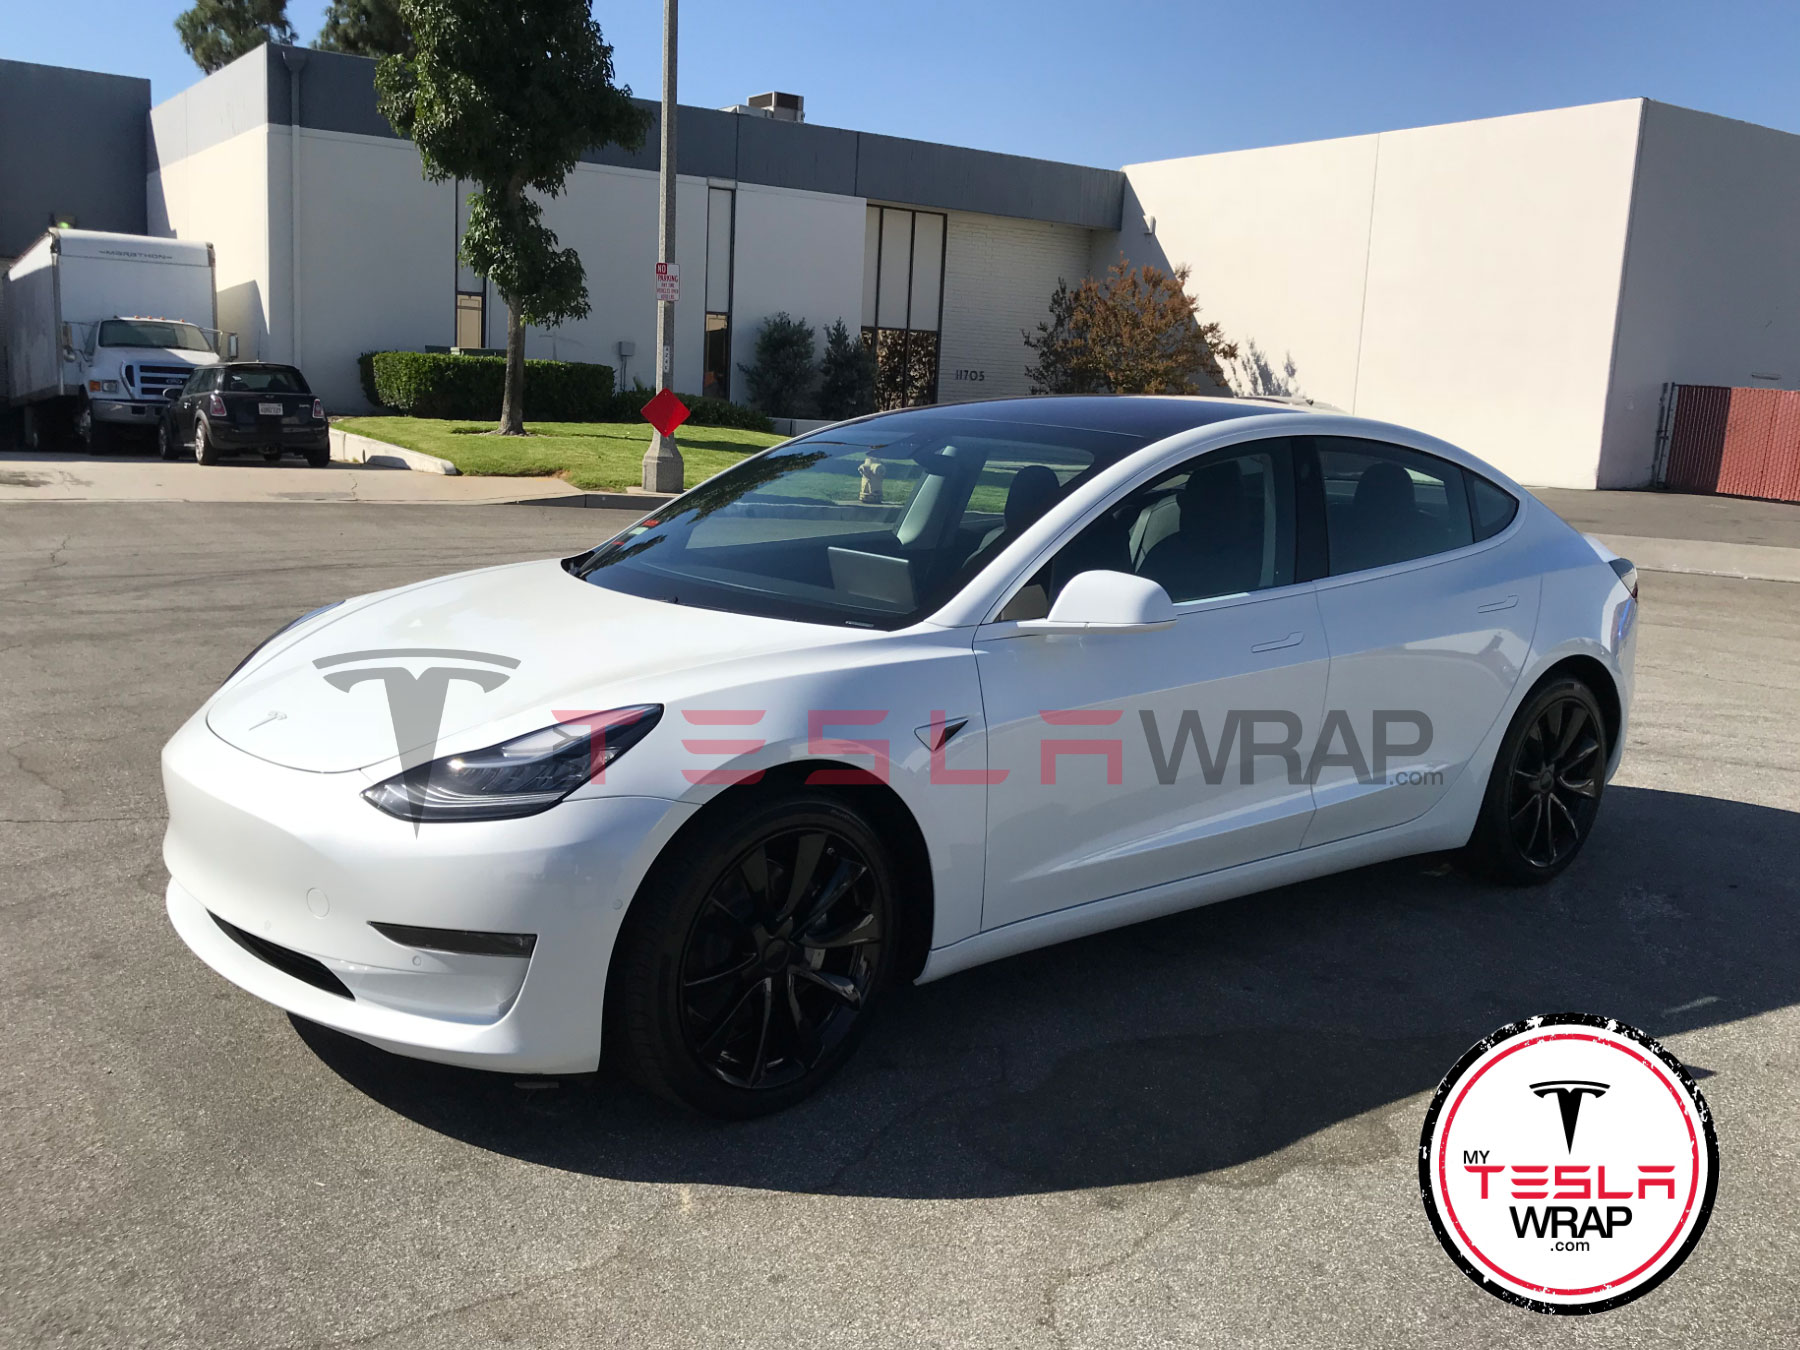 Tesla Model 3 Wrapped in White 3M vinyl carp wrap